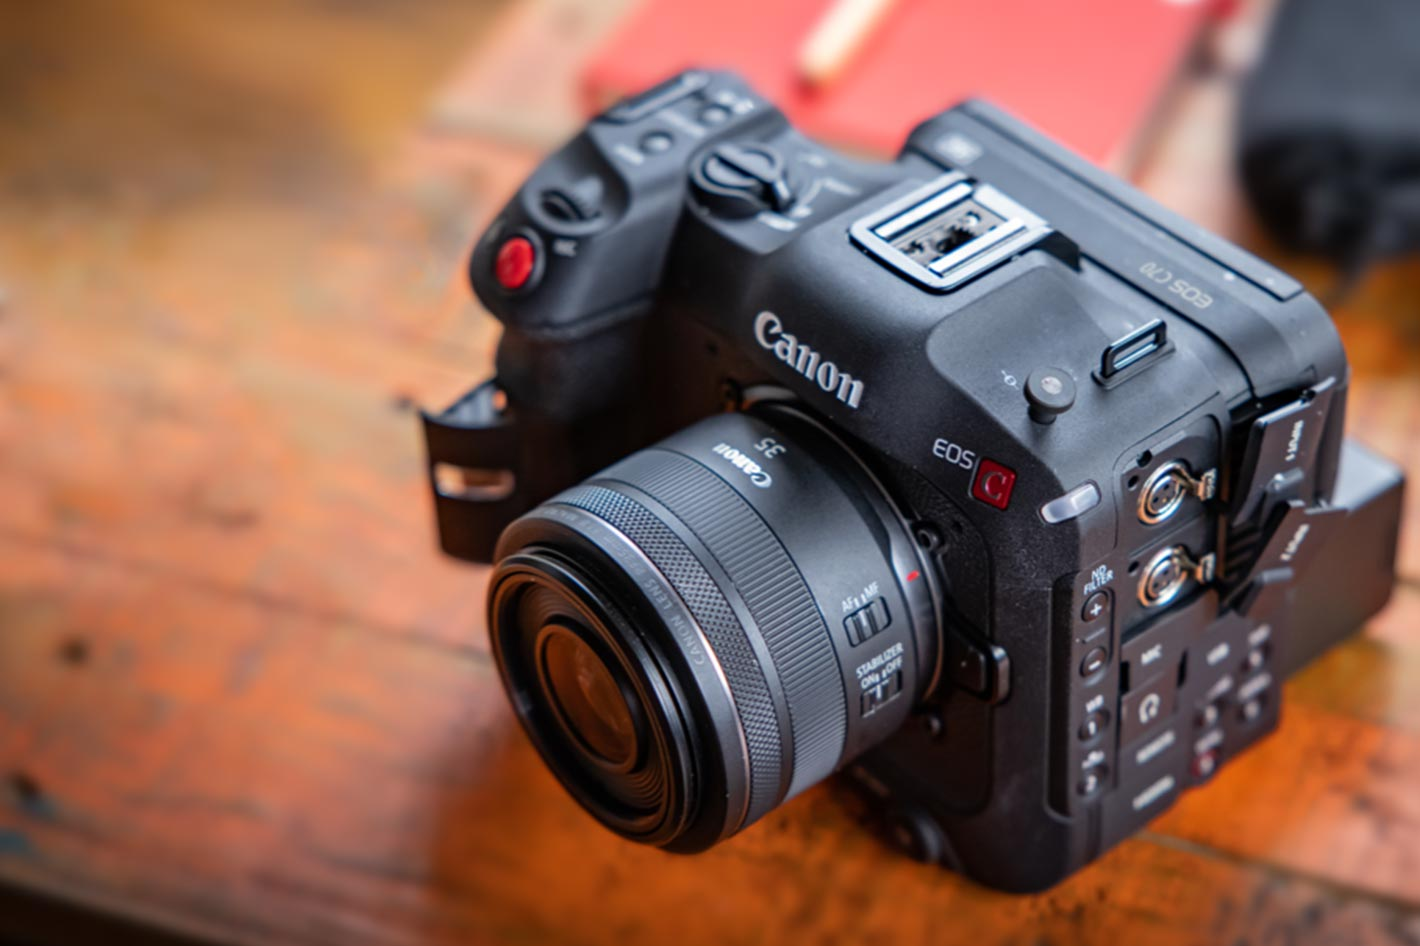 Canon EOS C70 brings a number of 'firsts' for the Cinema EOS System 7